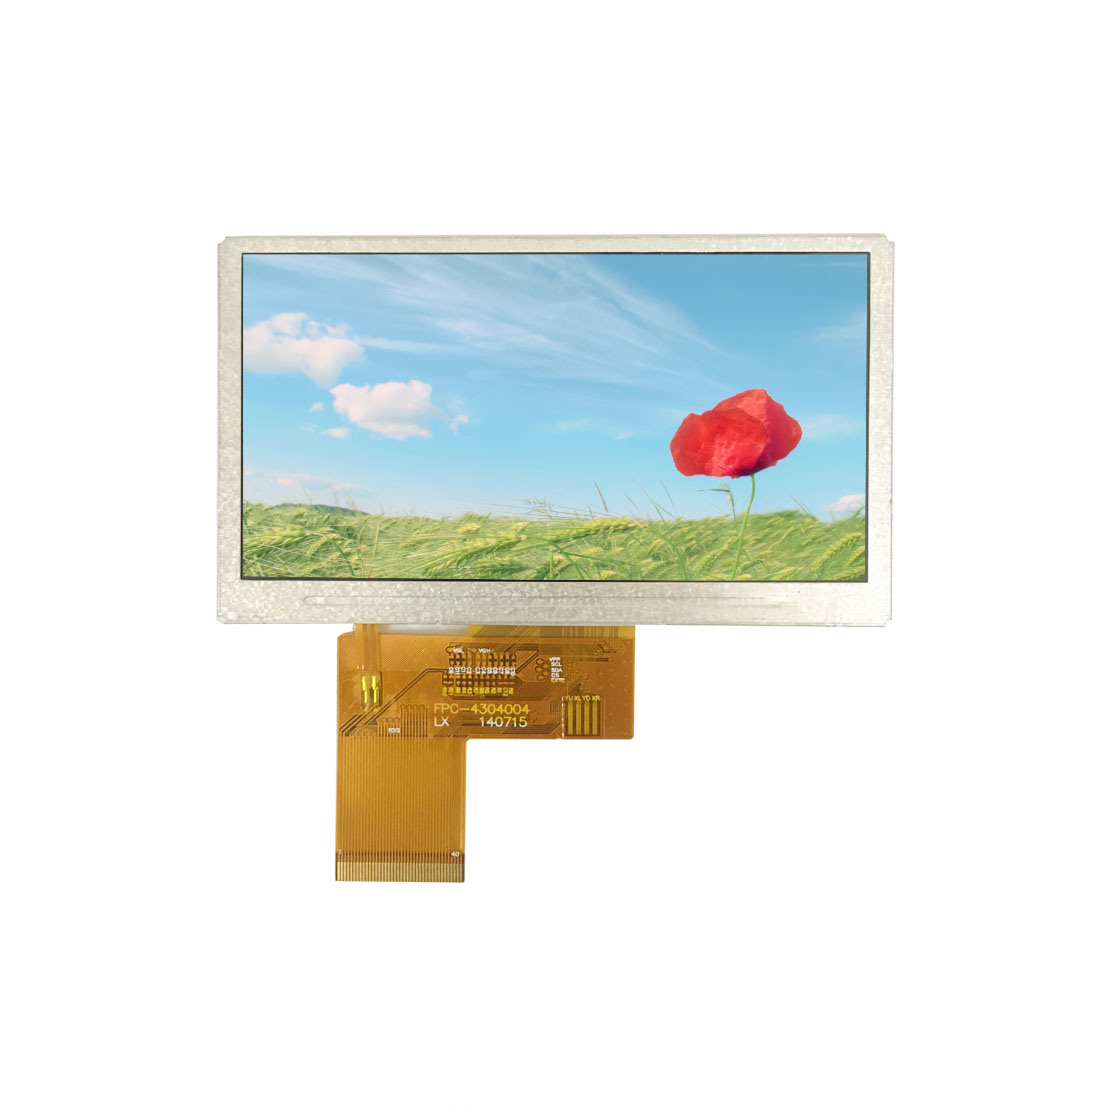 Wholesale Liquid Crystal Display Buy Reliable Lcd 43 Tft With High Luminance